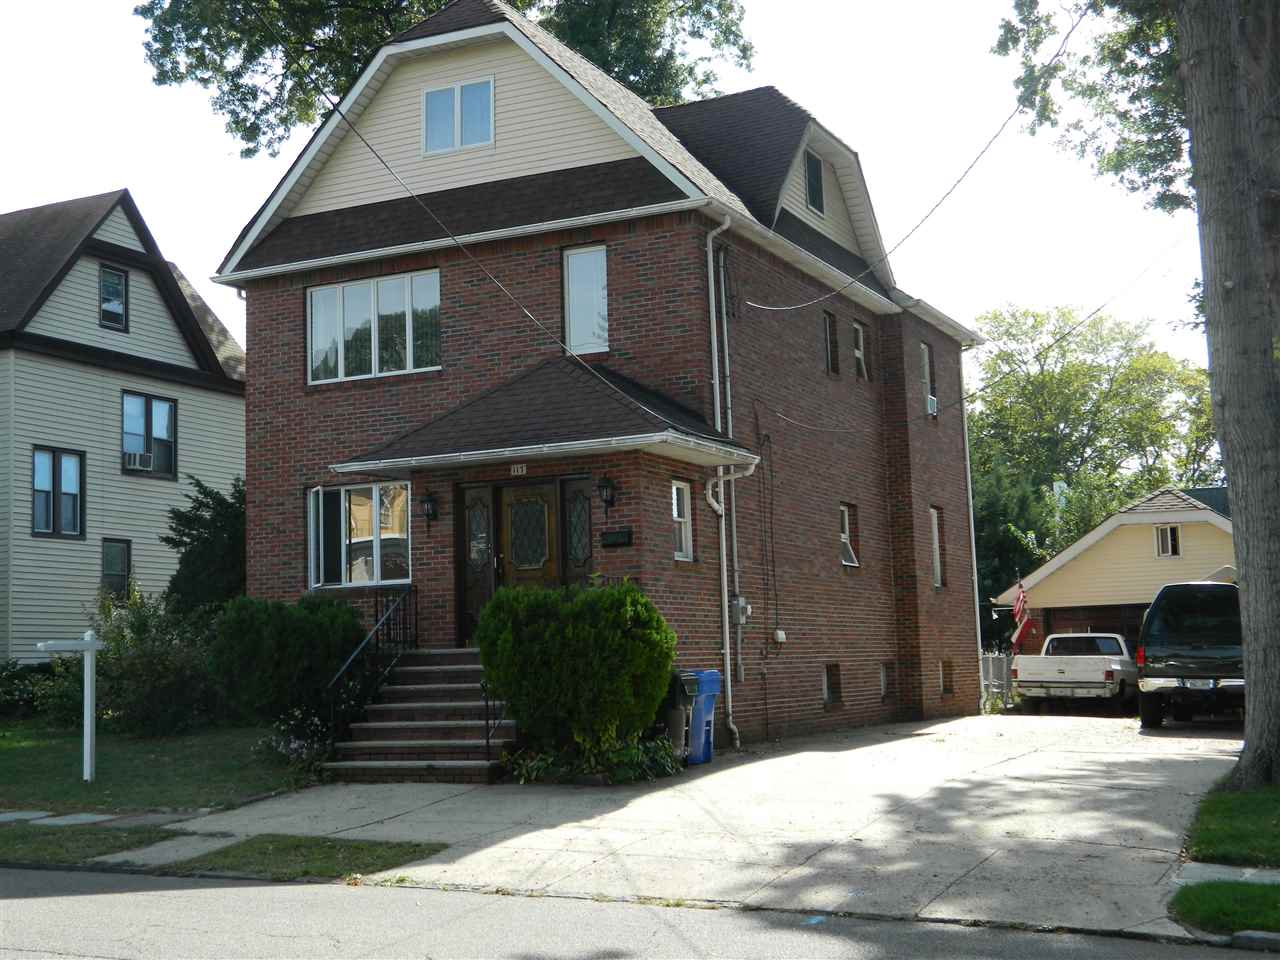 117 WEST NEWELL AVE, Rutherford, NJ 07070